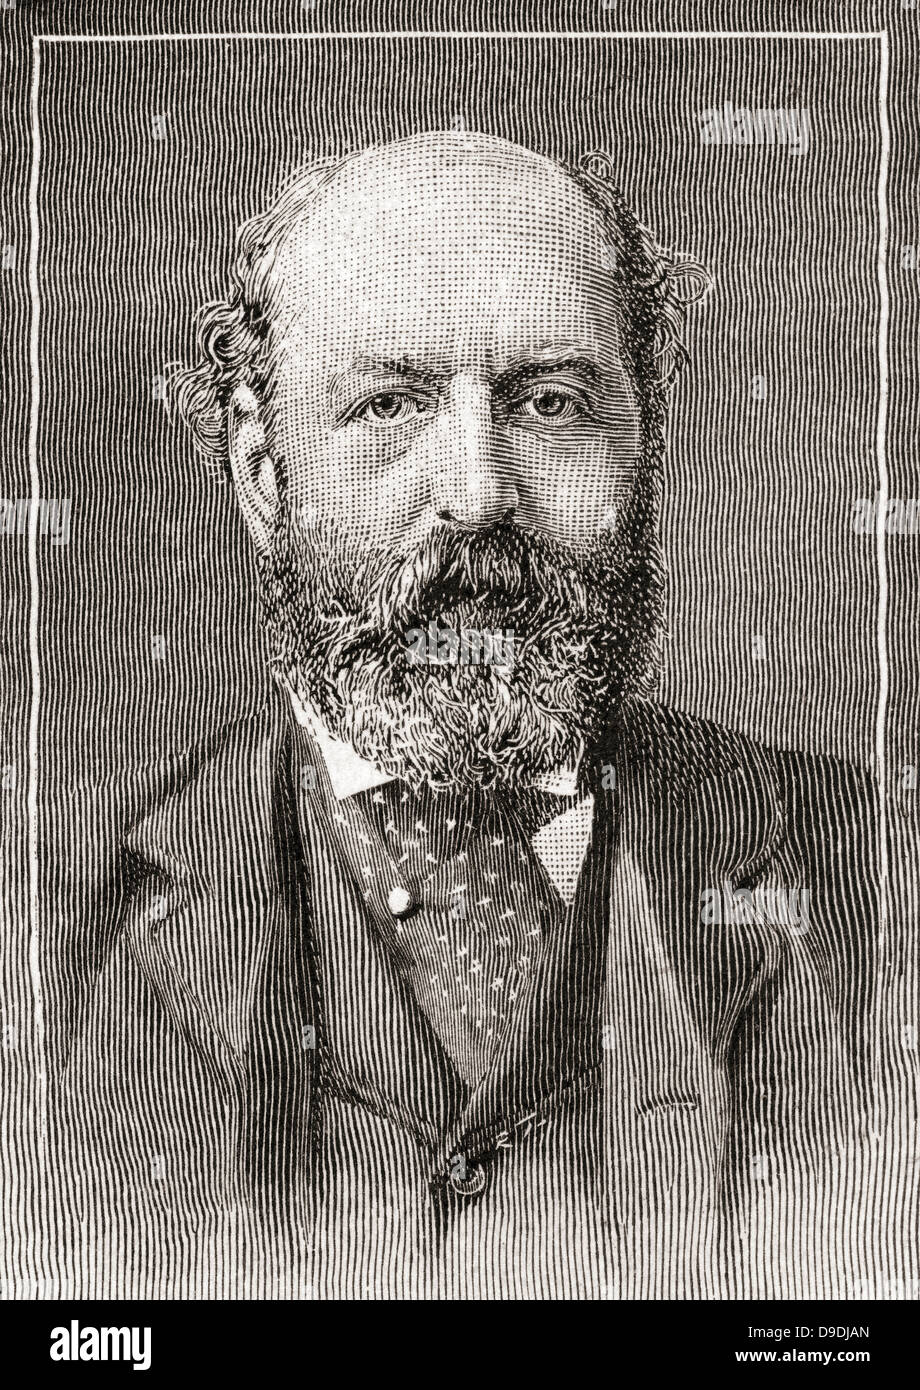 Nathan Mayer Rothschild, 1st Baron Rothschild, Baron de Rothschild, 1840 –1915. British banker and politician. - Stock Image